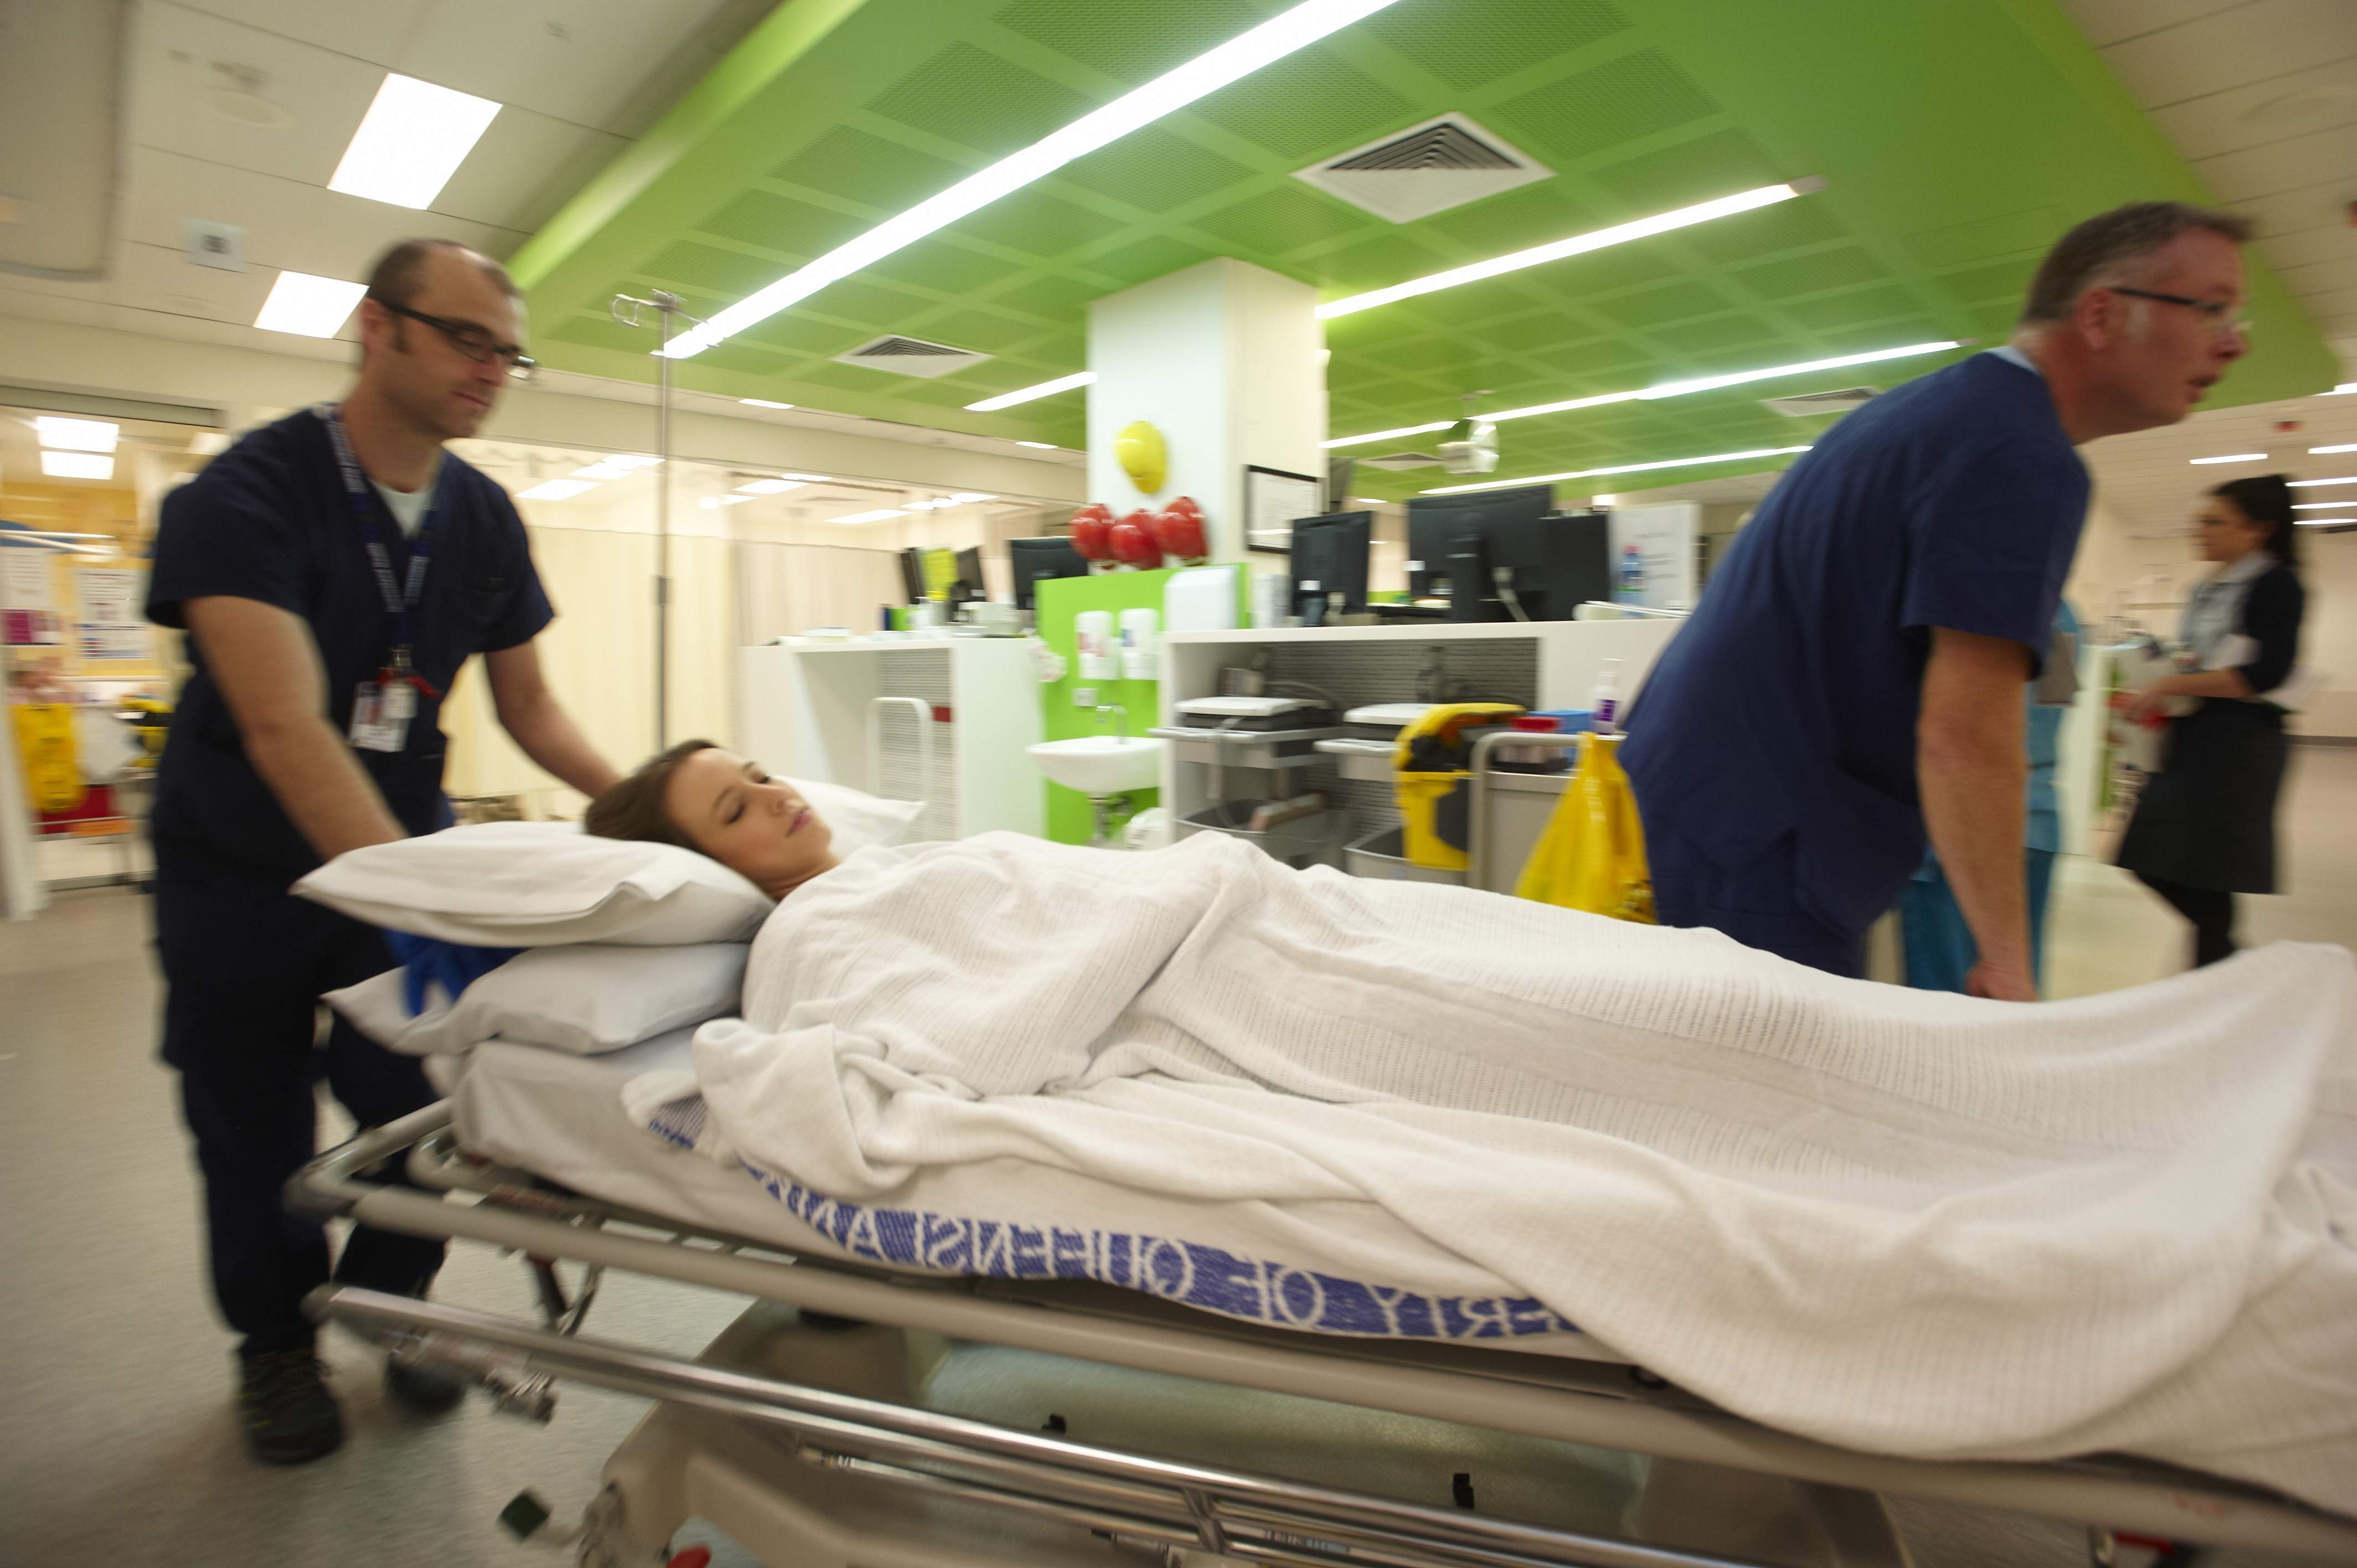 A young patient arriving in hospital emergency on a stretcher with two medical staff attending.